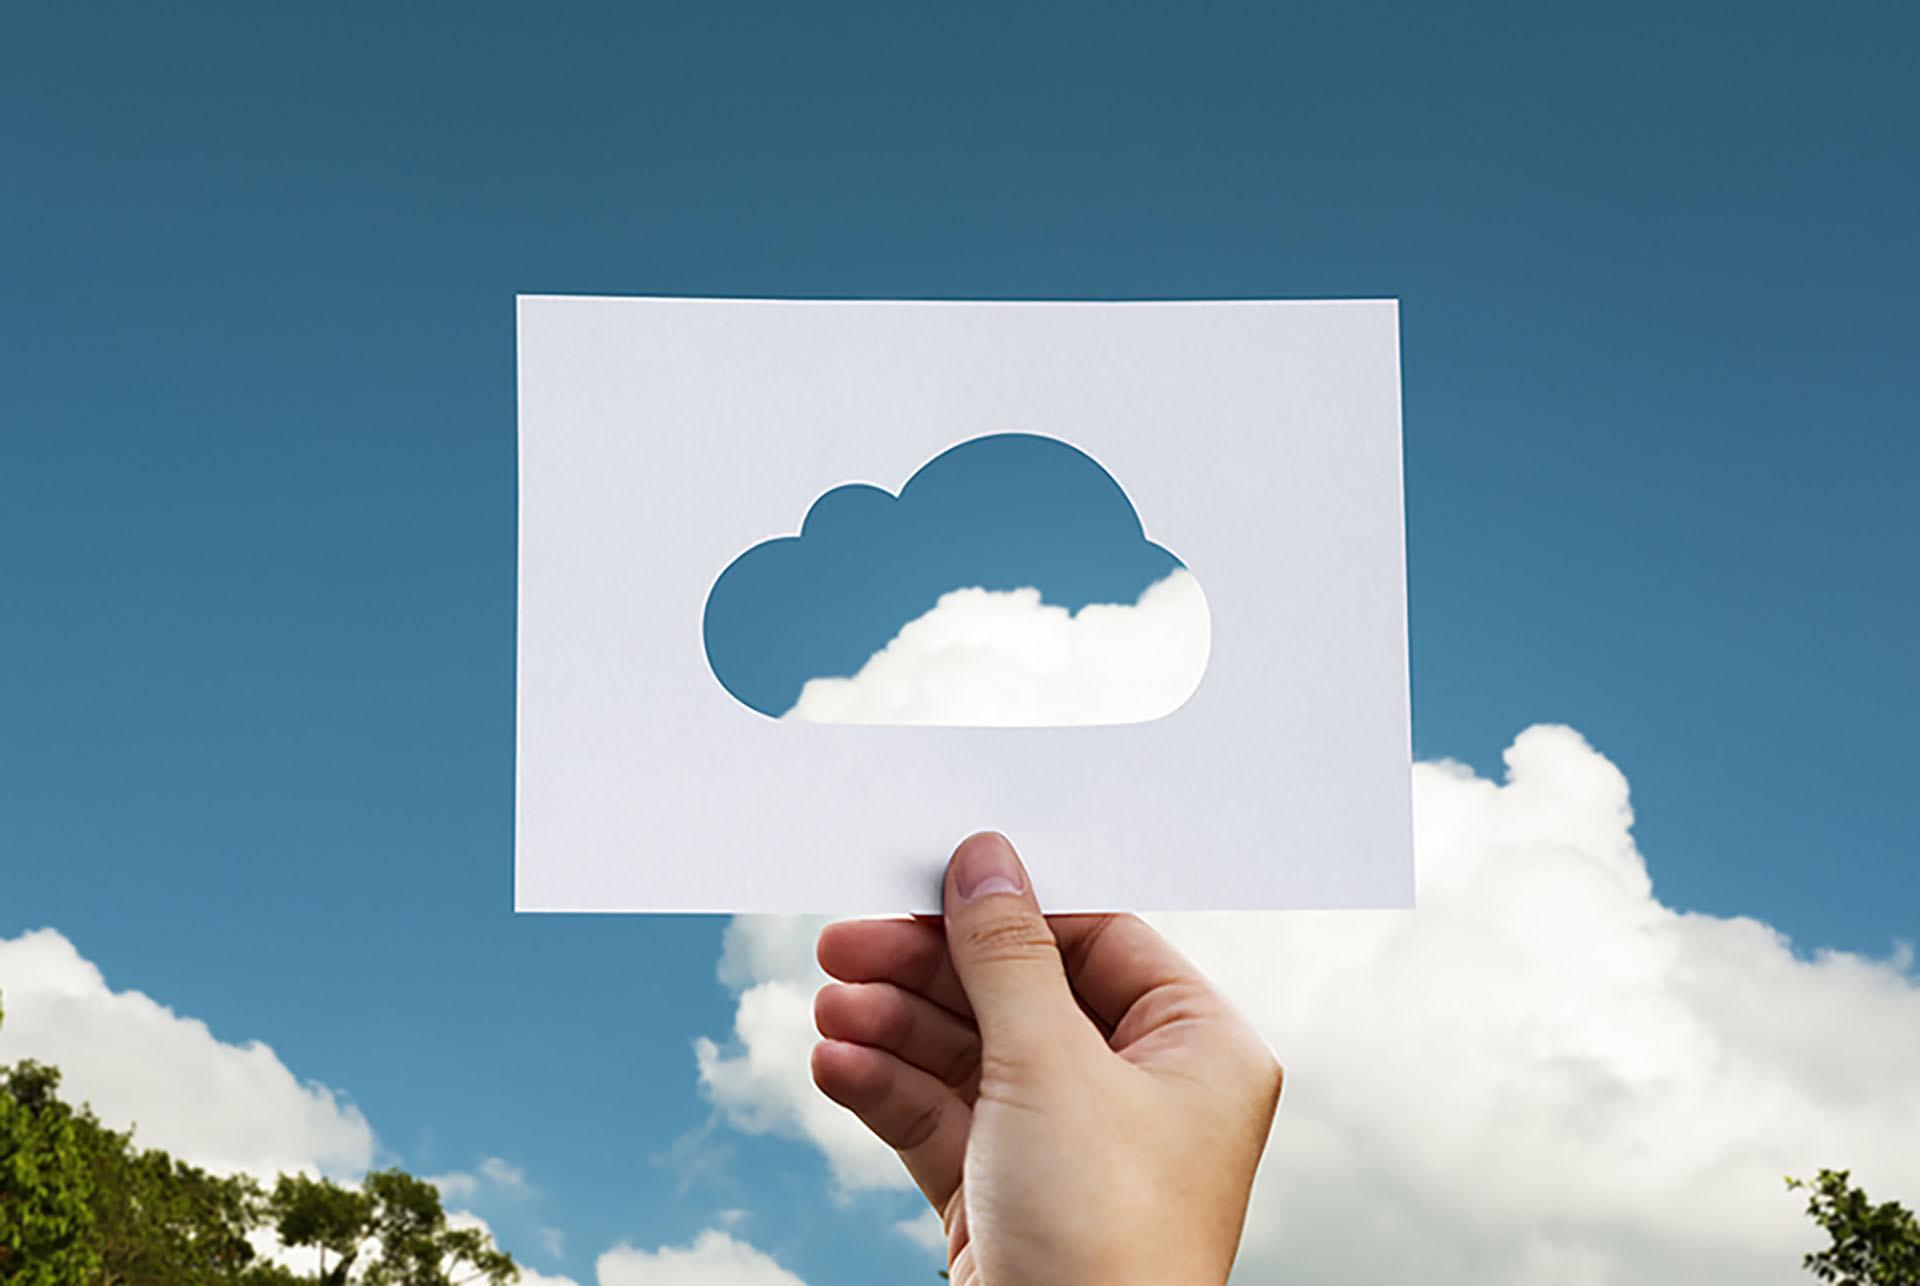 Cloud computing: Three reasons why it could be time to go cloud-first